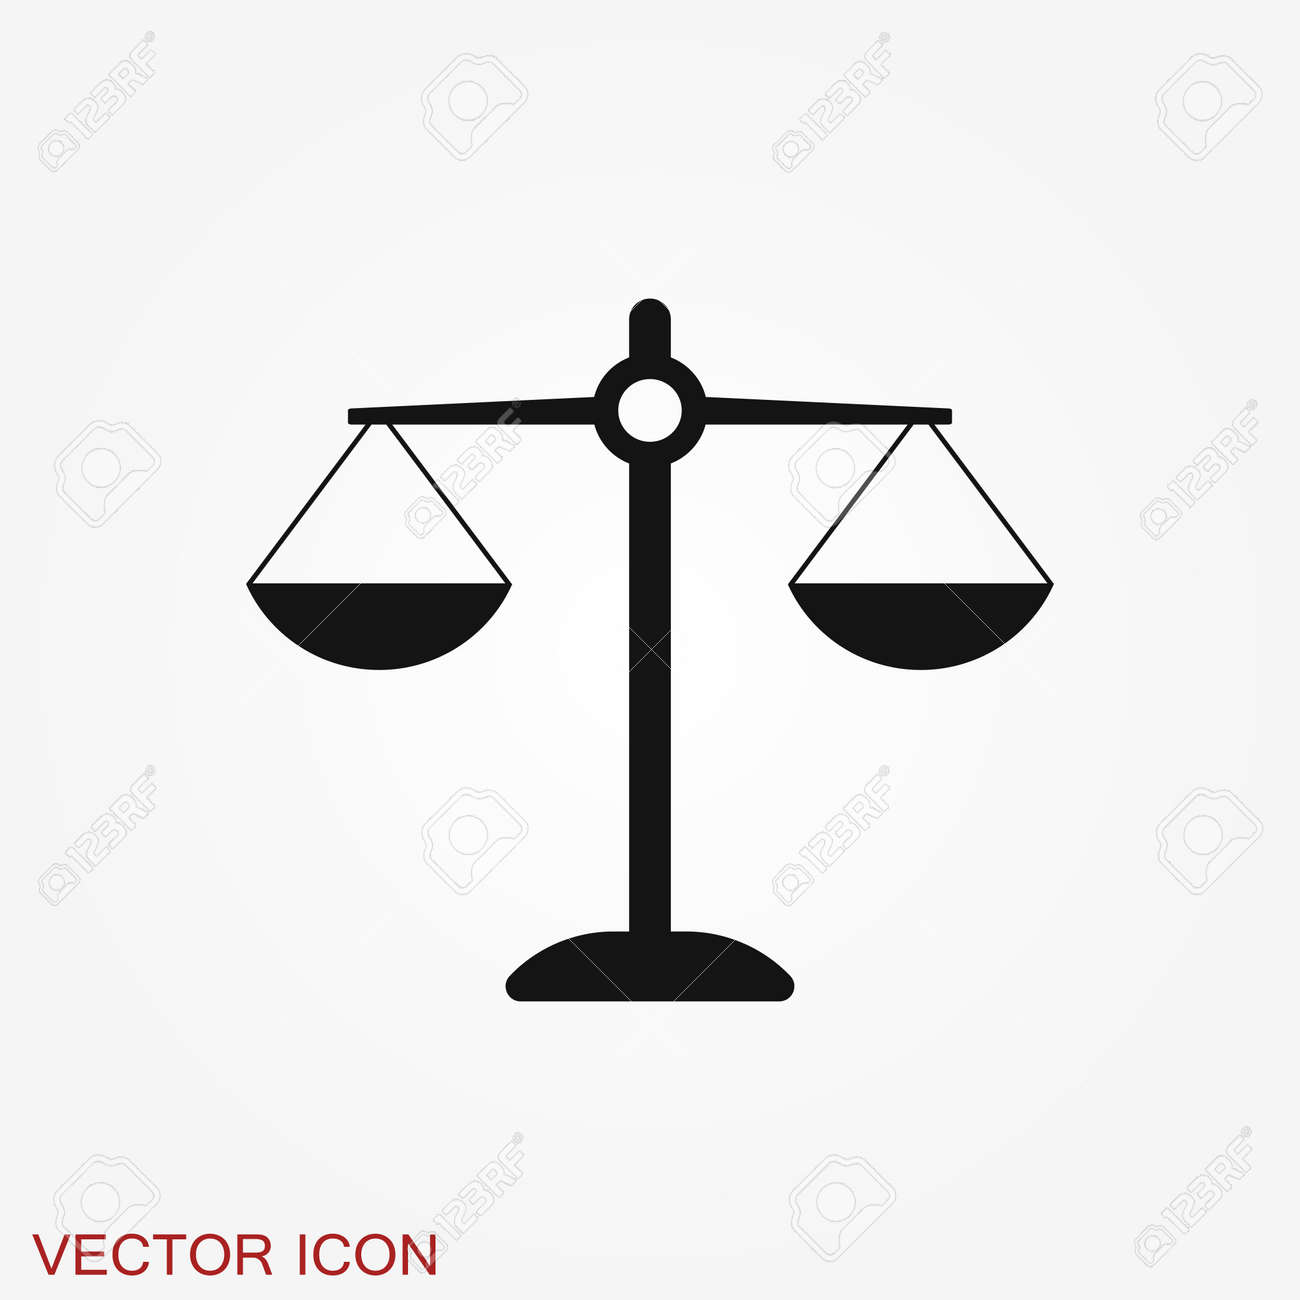 Scales icon. Scales of justice vector icon. Court of law symbol. Flat signs - 146849057